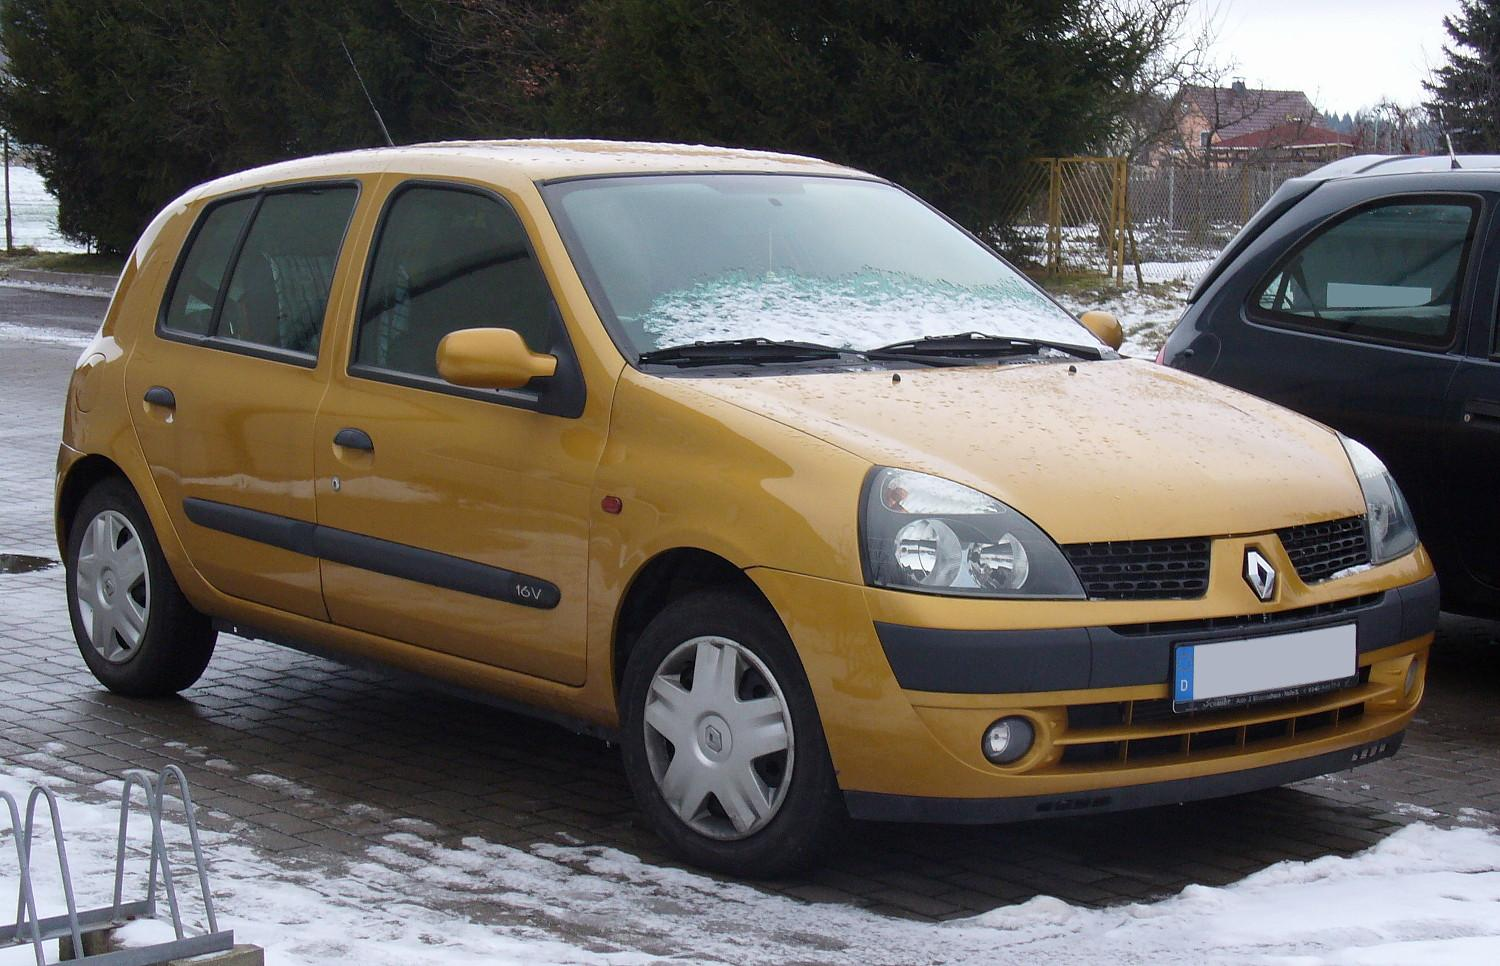 renault clio ii wikipedia autos post. Black Bedroom Furniture Sets. Home Design Ideas